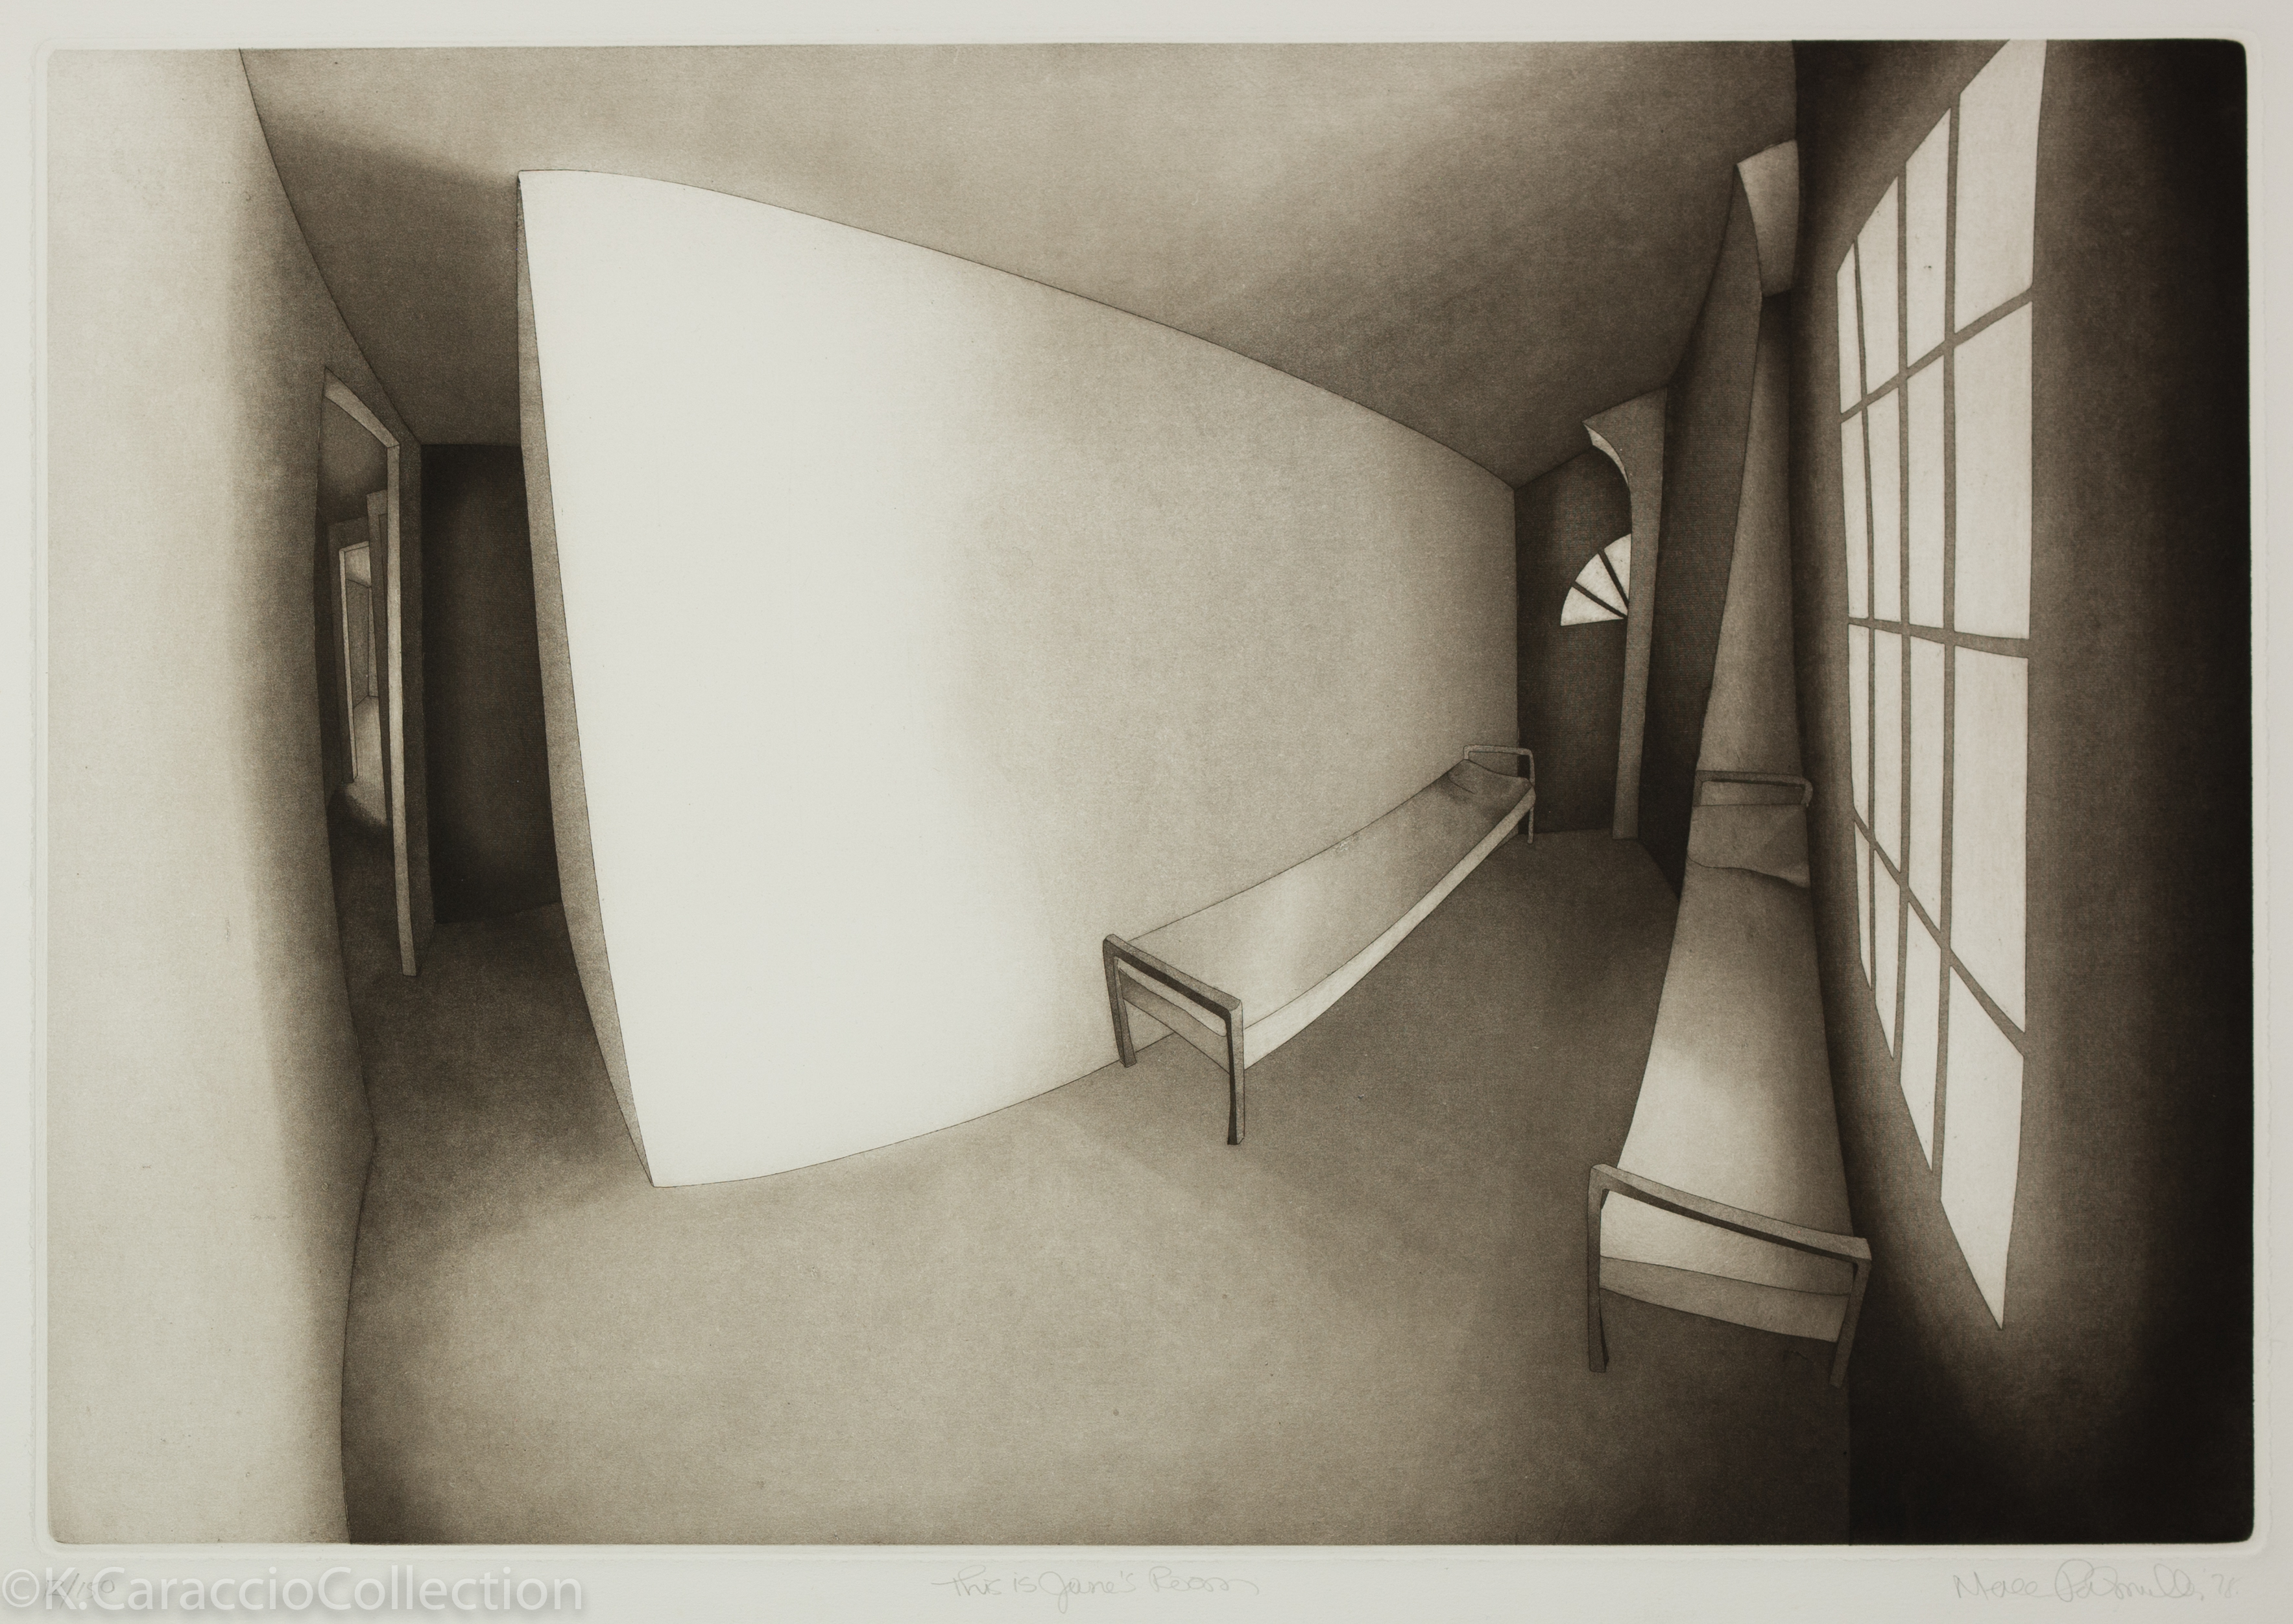 This is Jane's Room, 1978